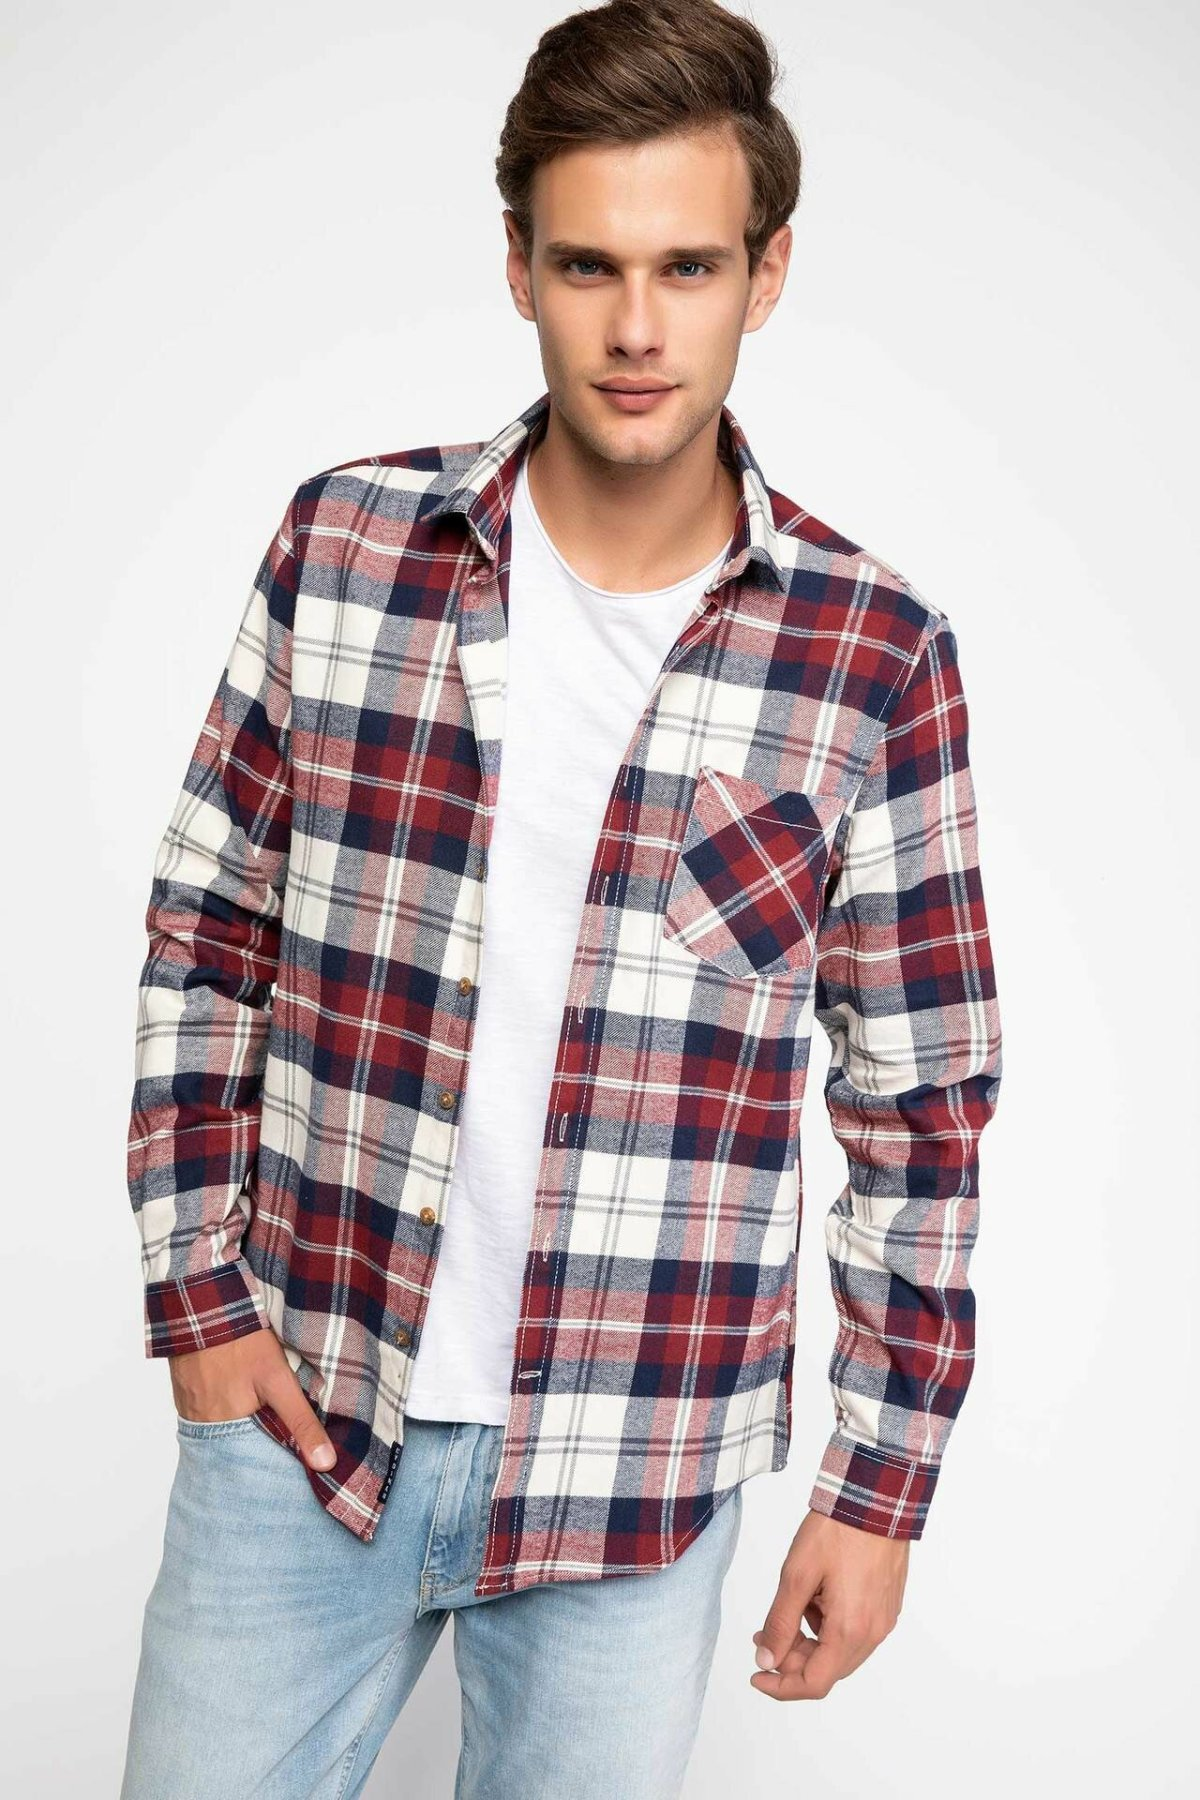 DeFacto Man Long Sleeve Shirt Classic Red Plaid Shirts Turn-down Collar Pockets Male Casual Shirts-J0601AZ18WN